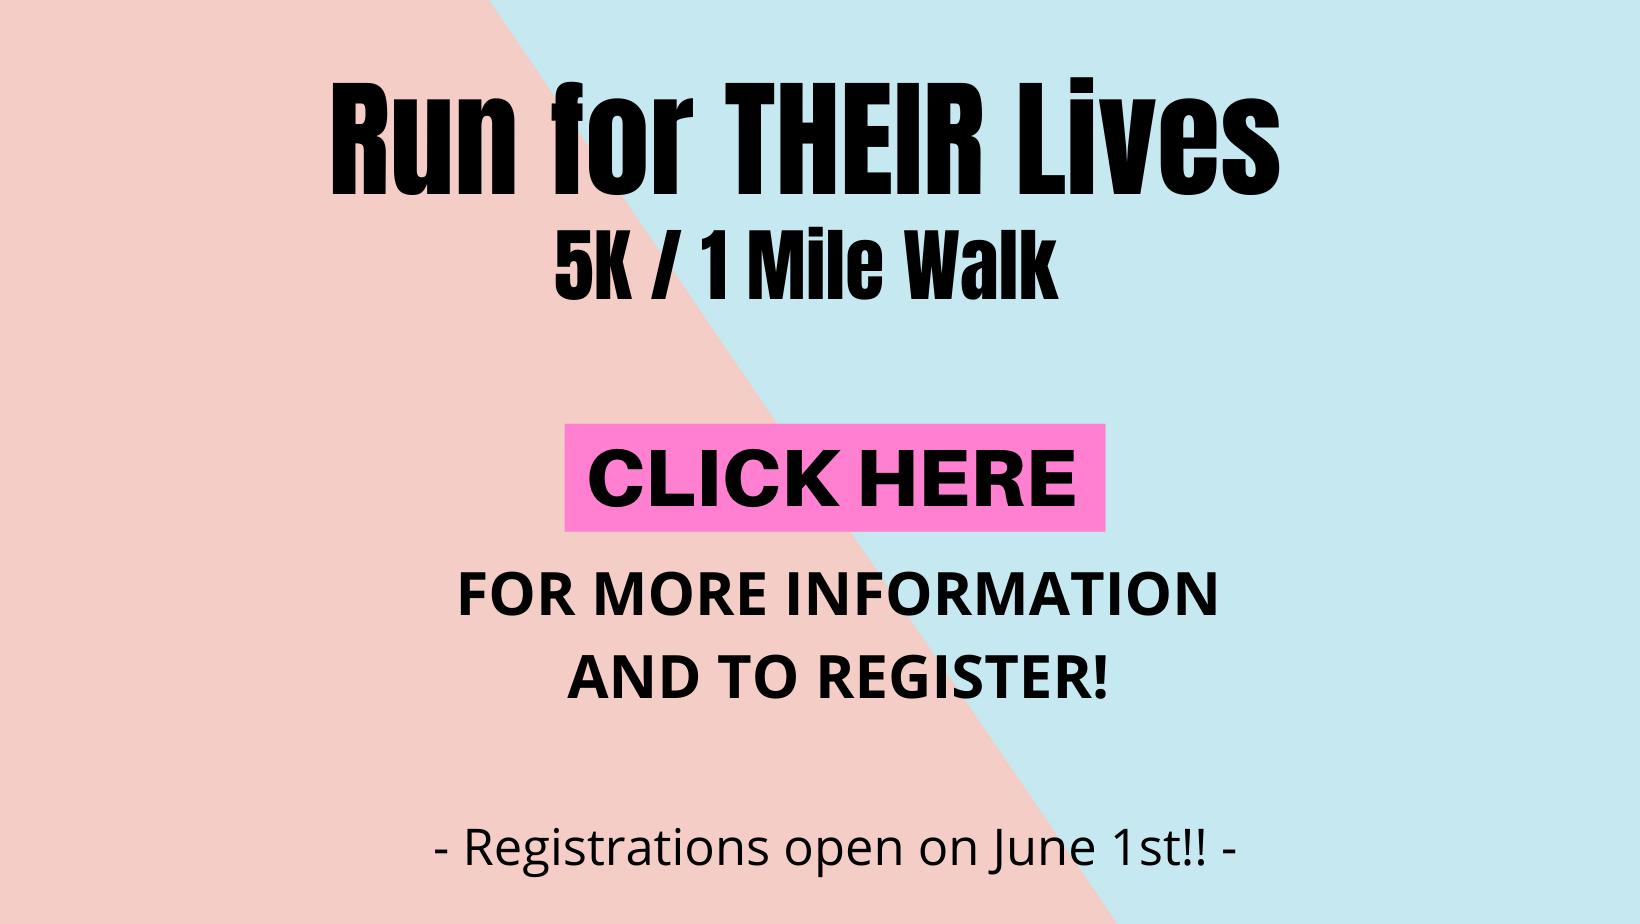 CLICK HERE TO ENTER REGISTRATION SITE!